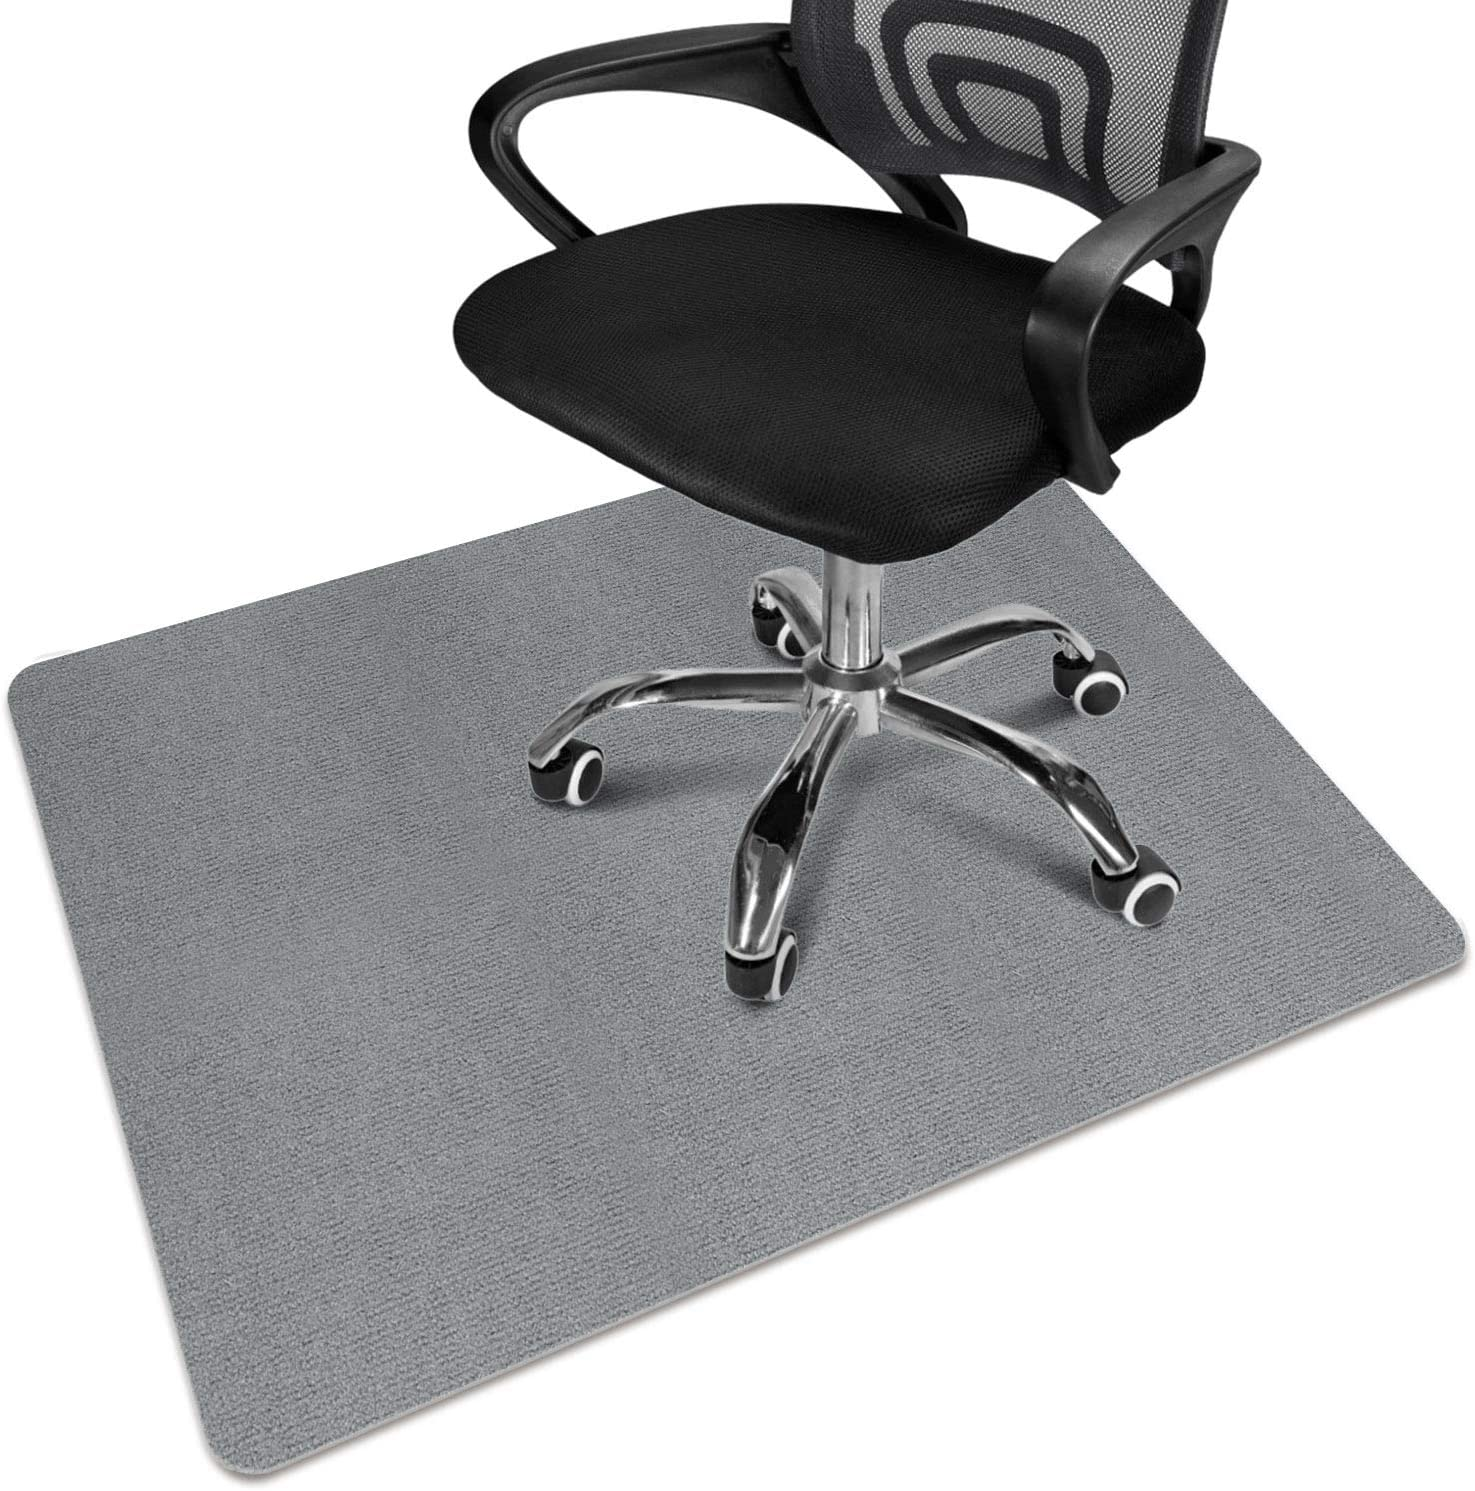 """Office Chair Mat, Desk Chair Mat for Hardwood Floor, Computer Chair Mat for Rolling Chair, Multi-Purpose Low Pile Desk Chair Mat 47""""x 35"""" Large Anti-Slip Floor Protector Rug 0.16"""" Thick (Gray)"""